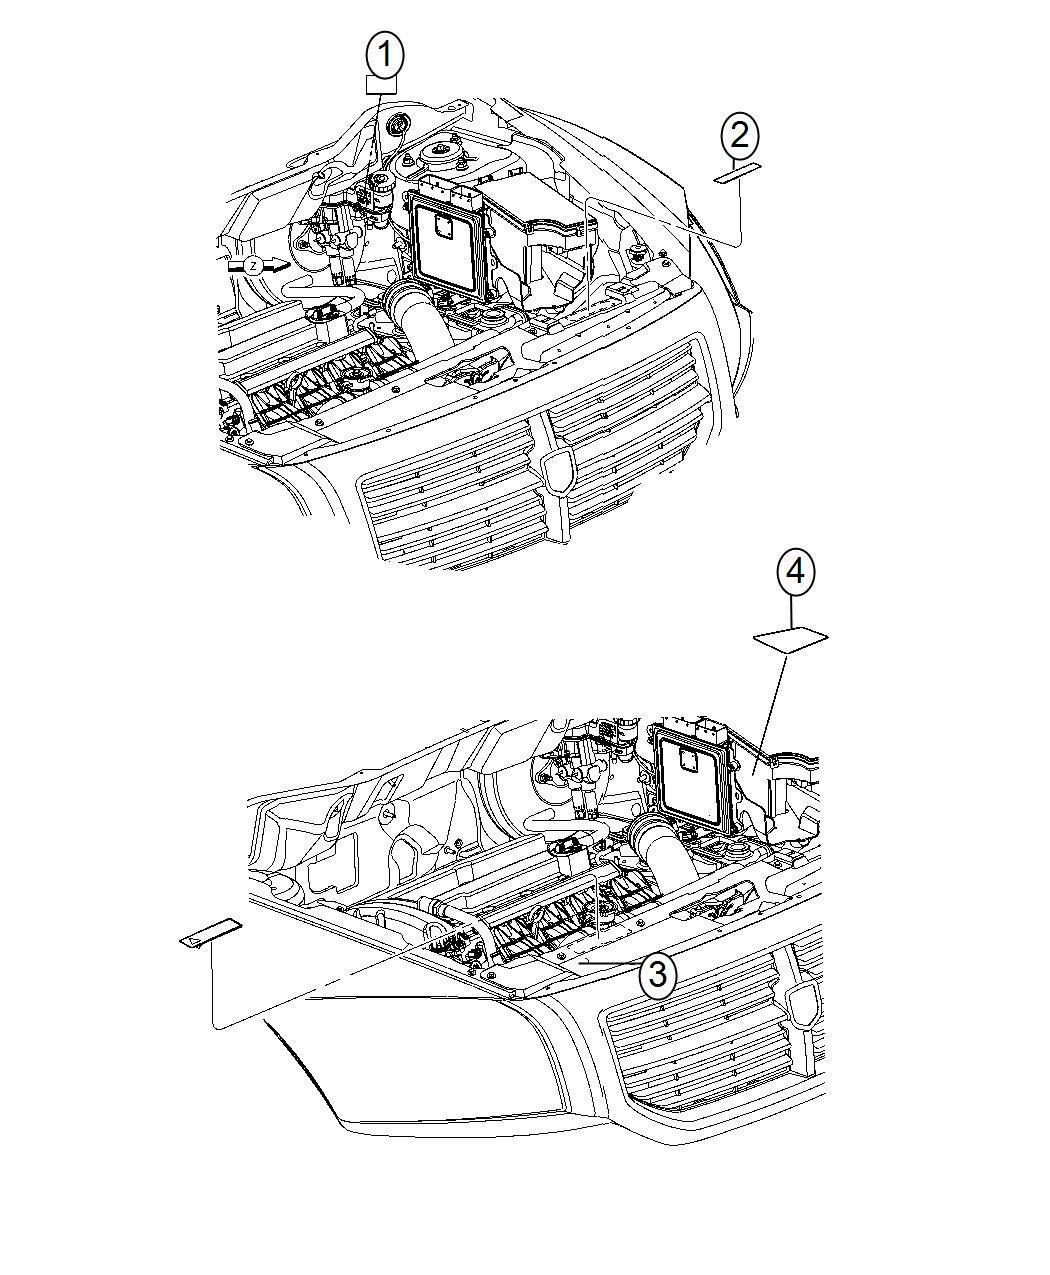 Dodge Dart Label Air Conditioning System